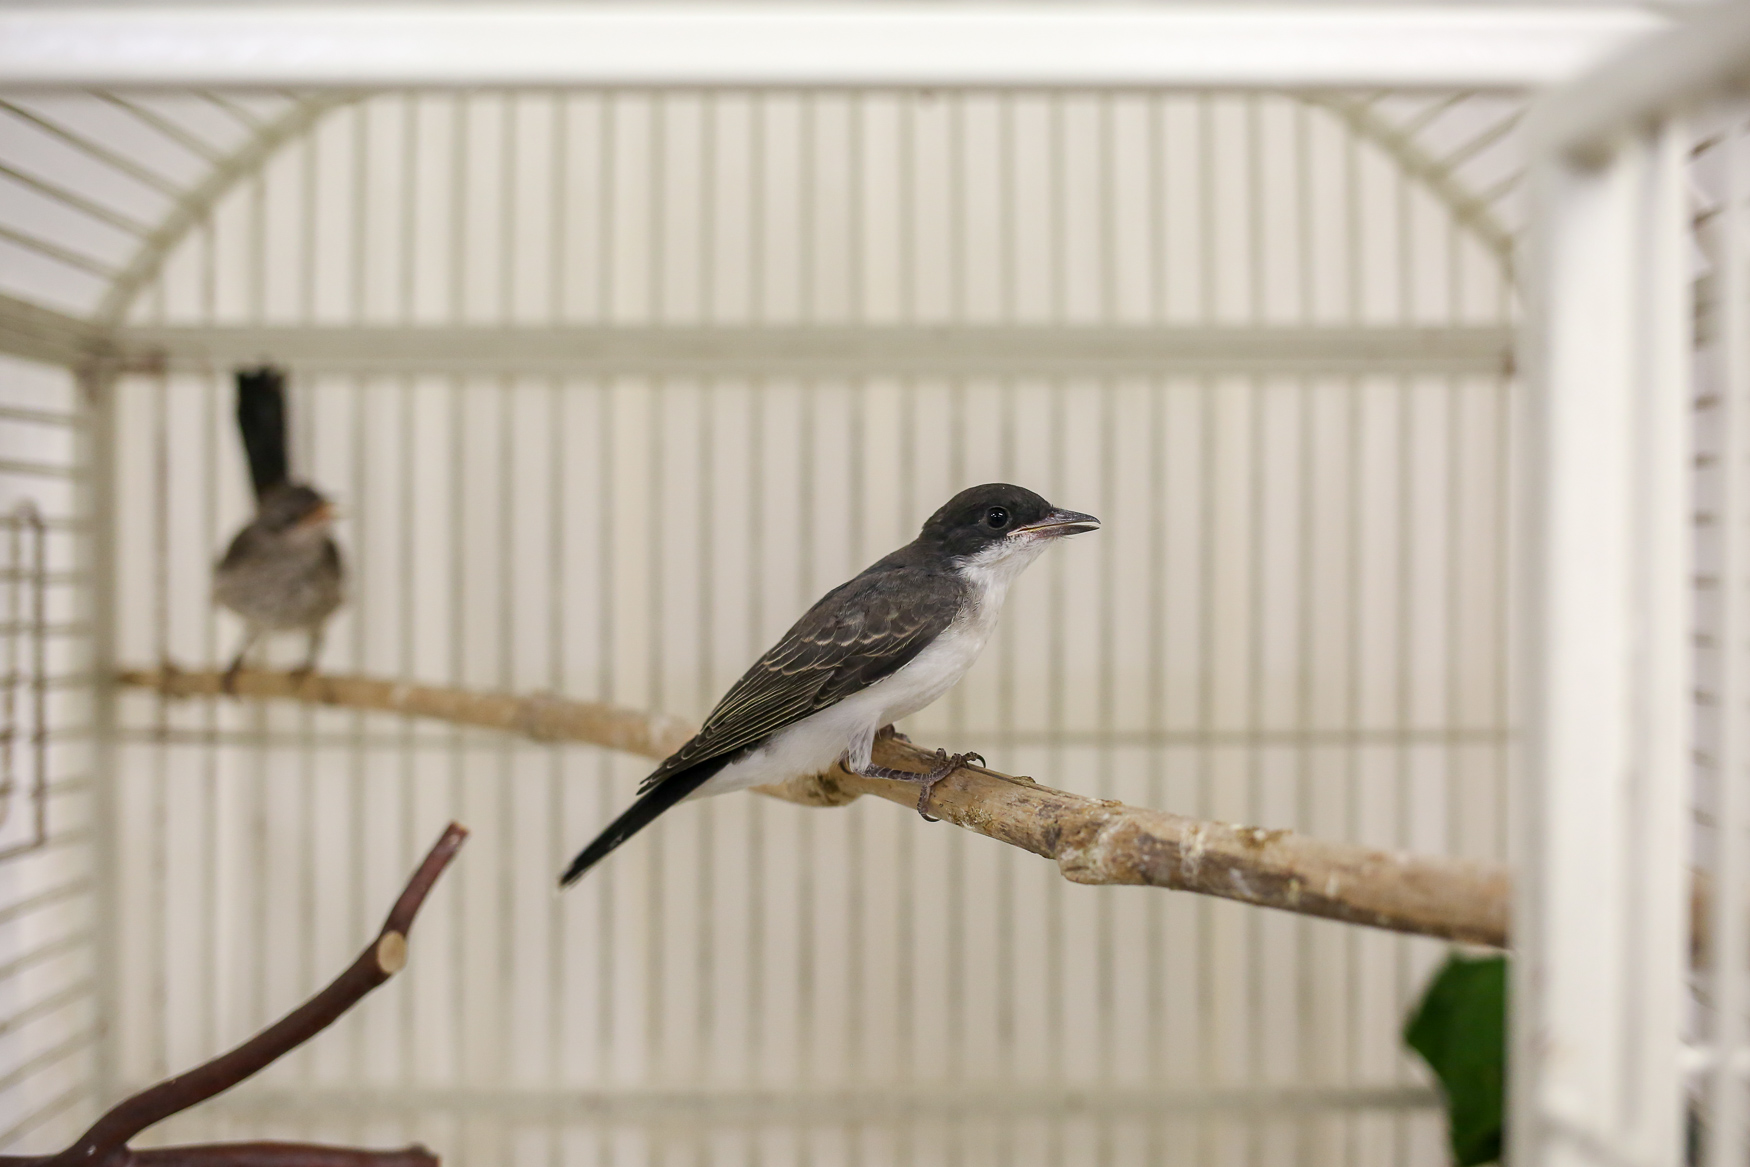 An Eastern Kingbird and a Mockingjay share a cage. (Amanda Andrade-Rhoades/DC Refined)